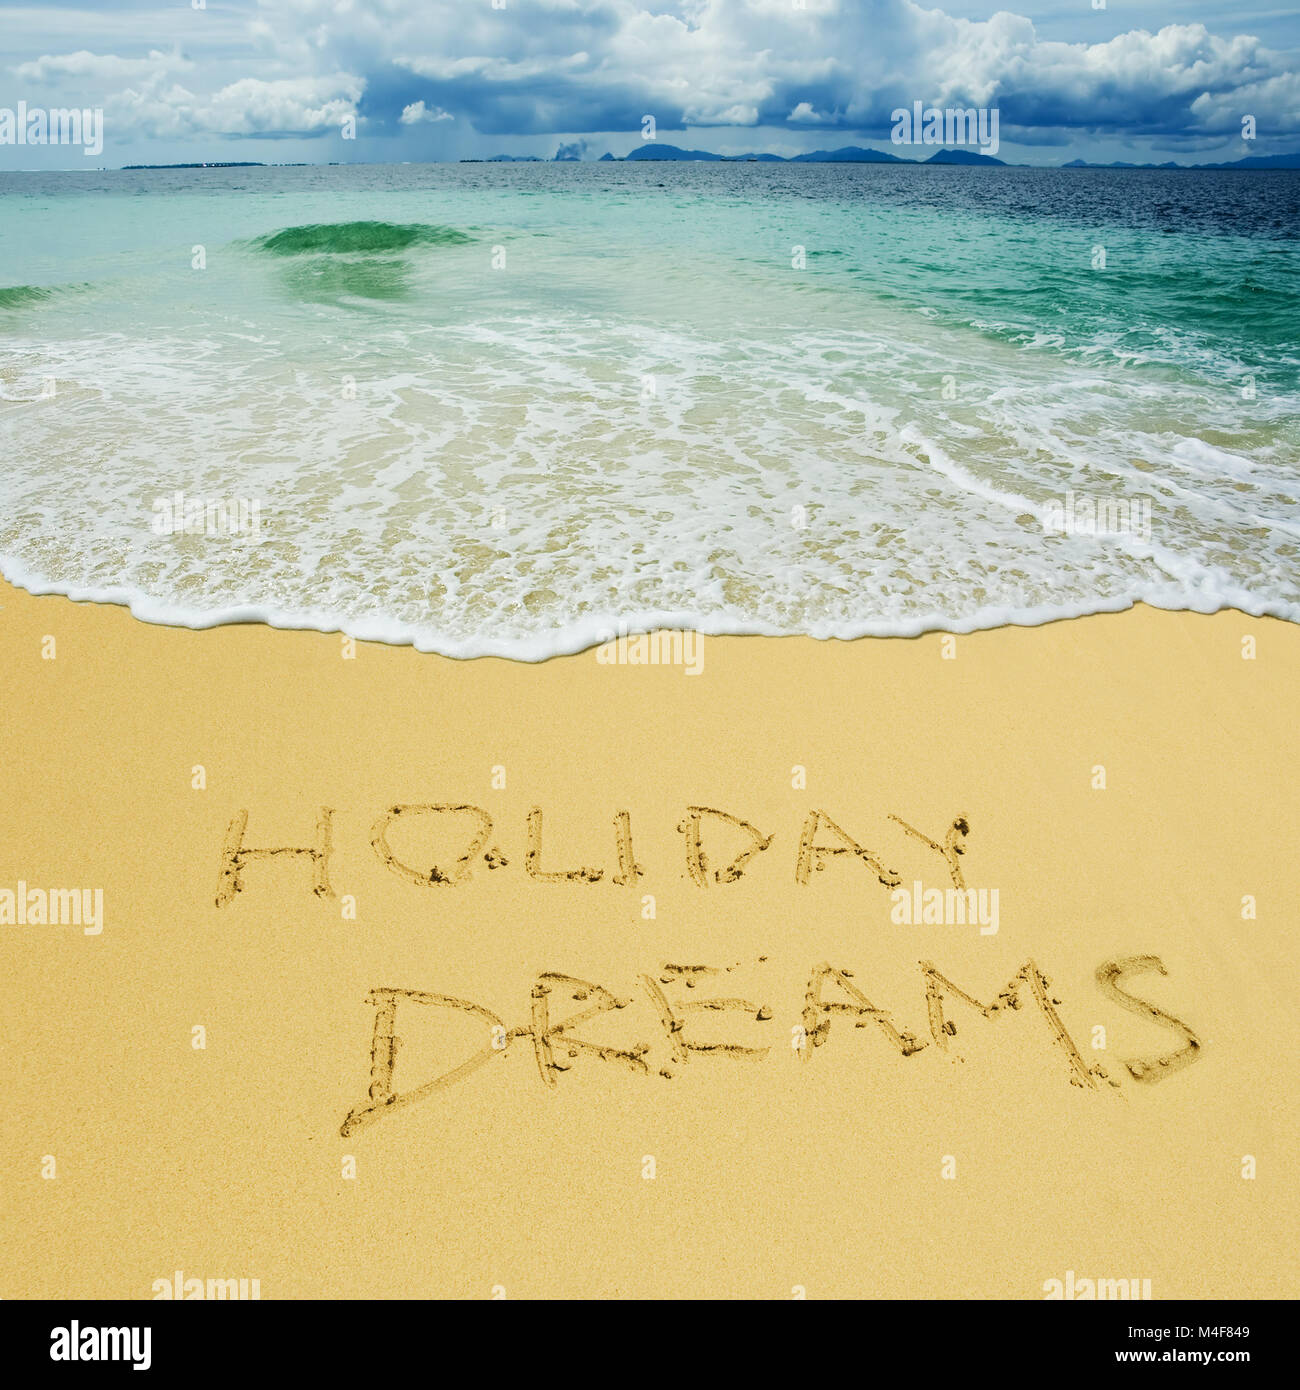 holiday dreams written in a sandy tropical beach - Stock Image